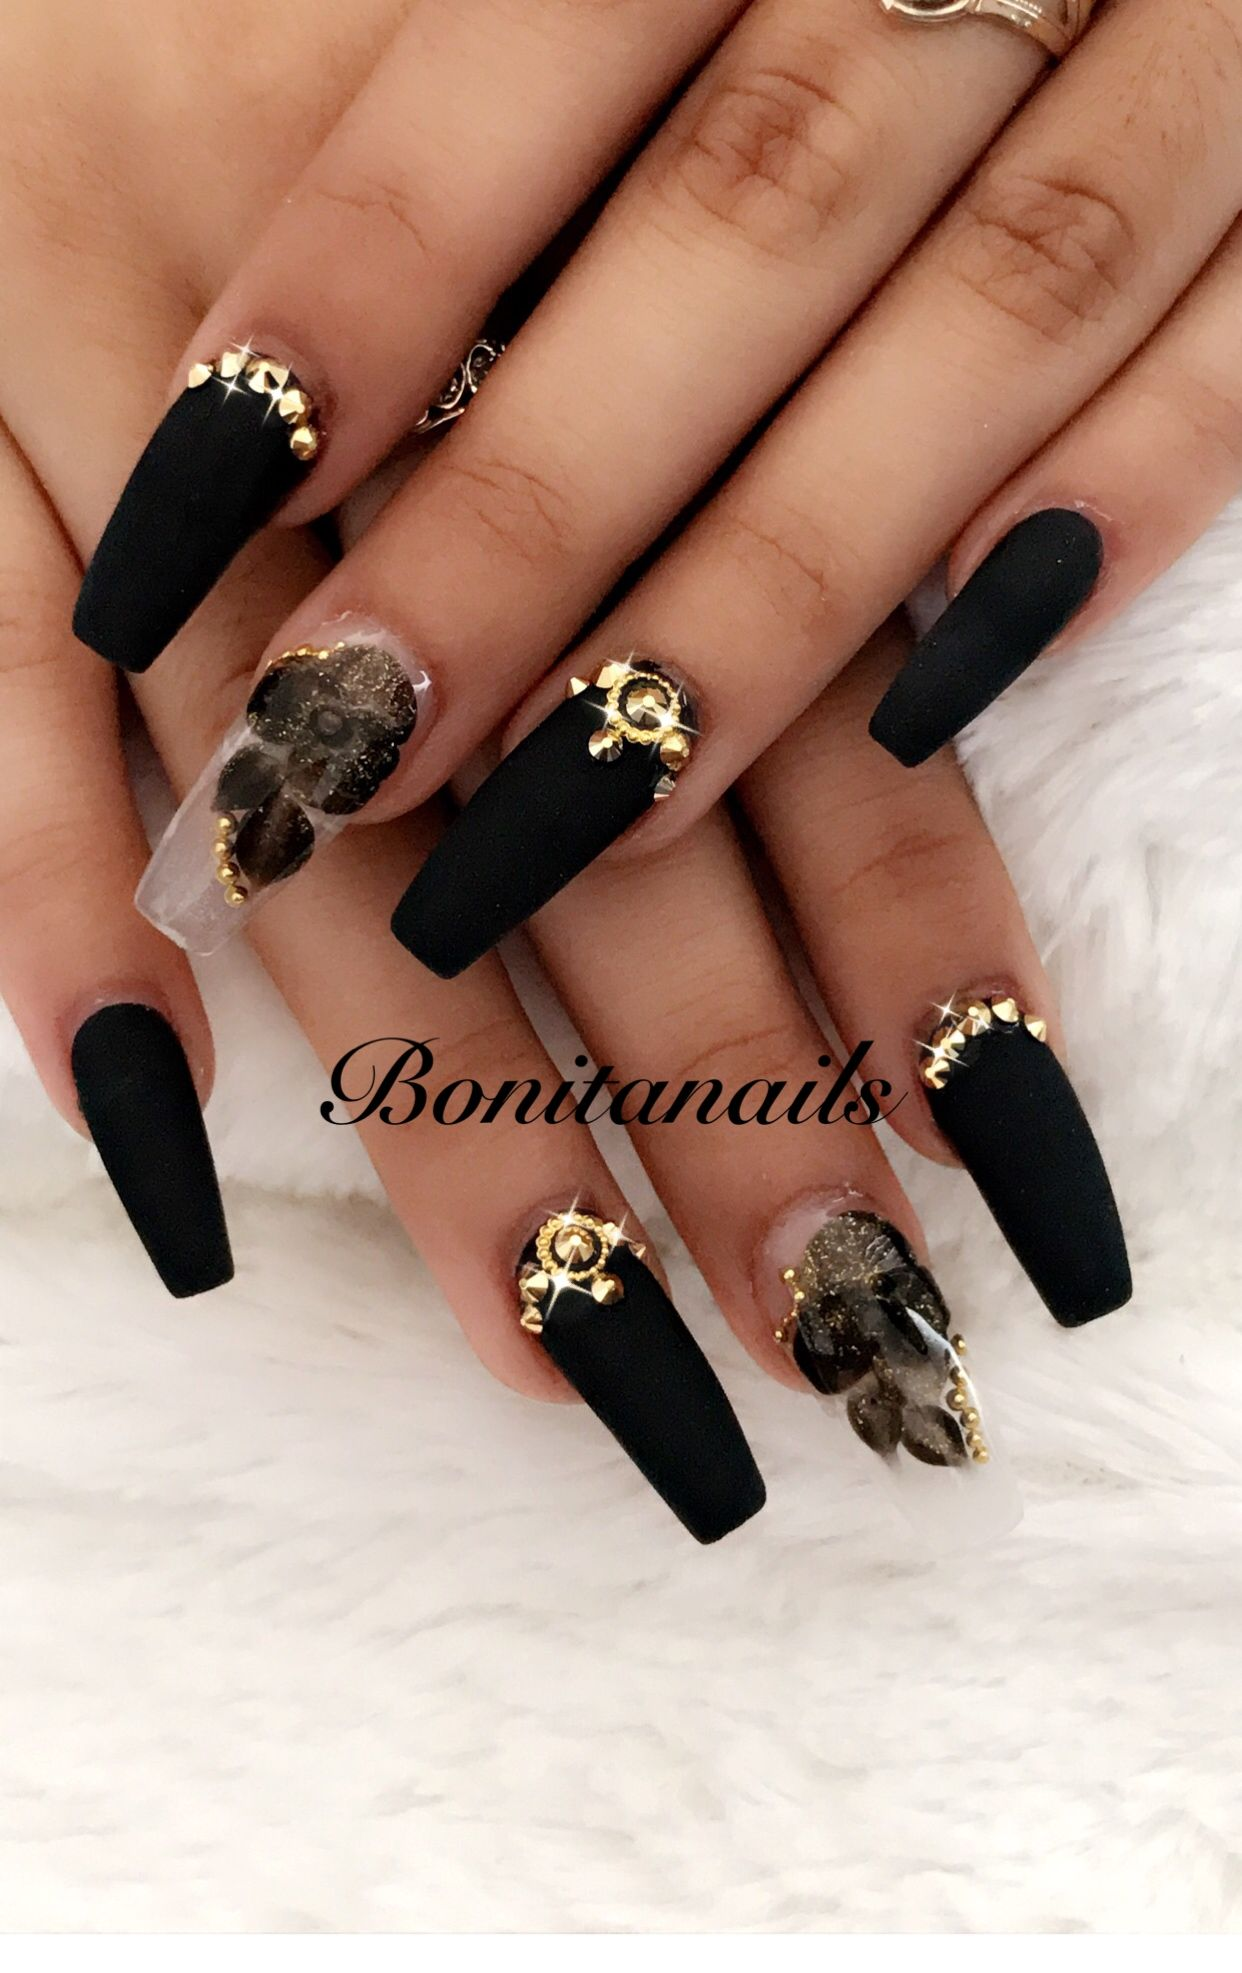 𝓢𝓮𝓿𝓲𝓮 𝓚𝓷𝓸𝔀𝓵𝓽𝓸𝓷 ♛ | Uña | Nail designs, Nails, Dark nails